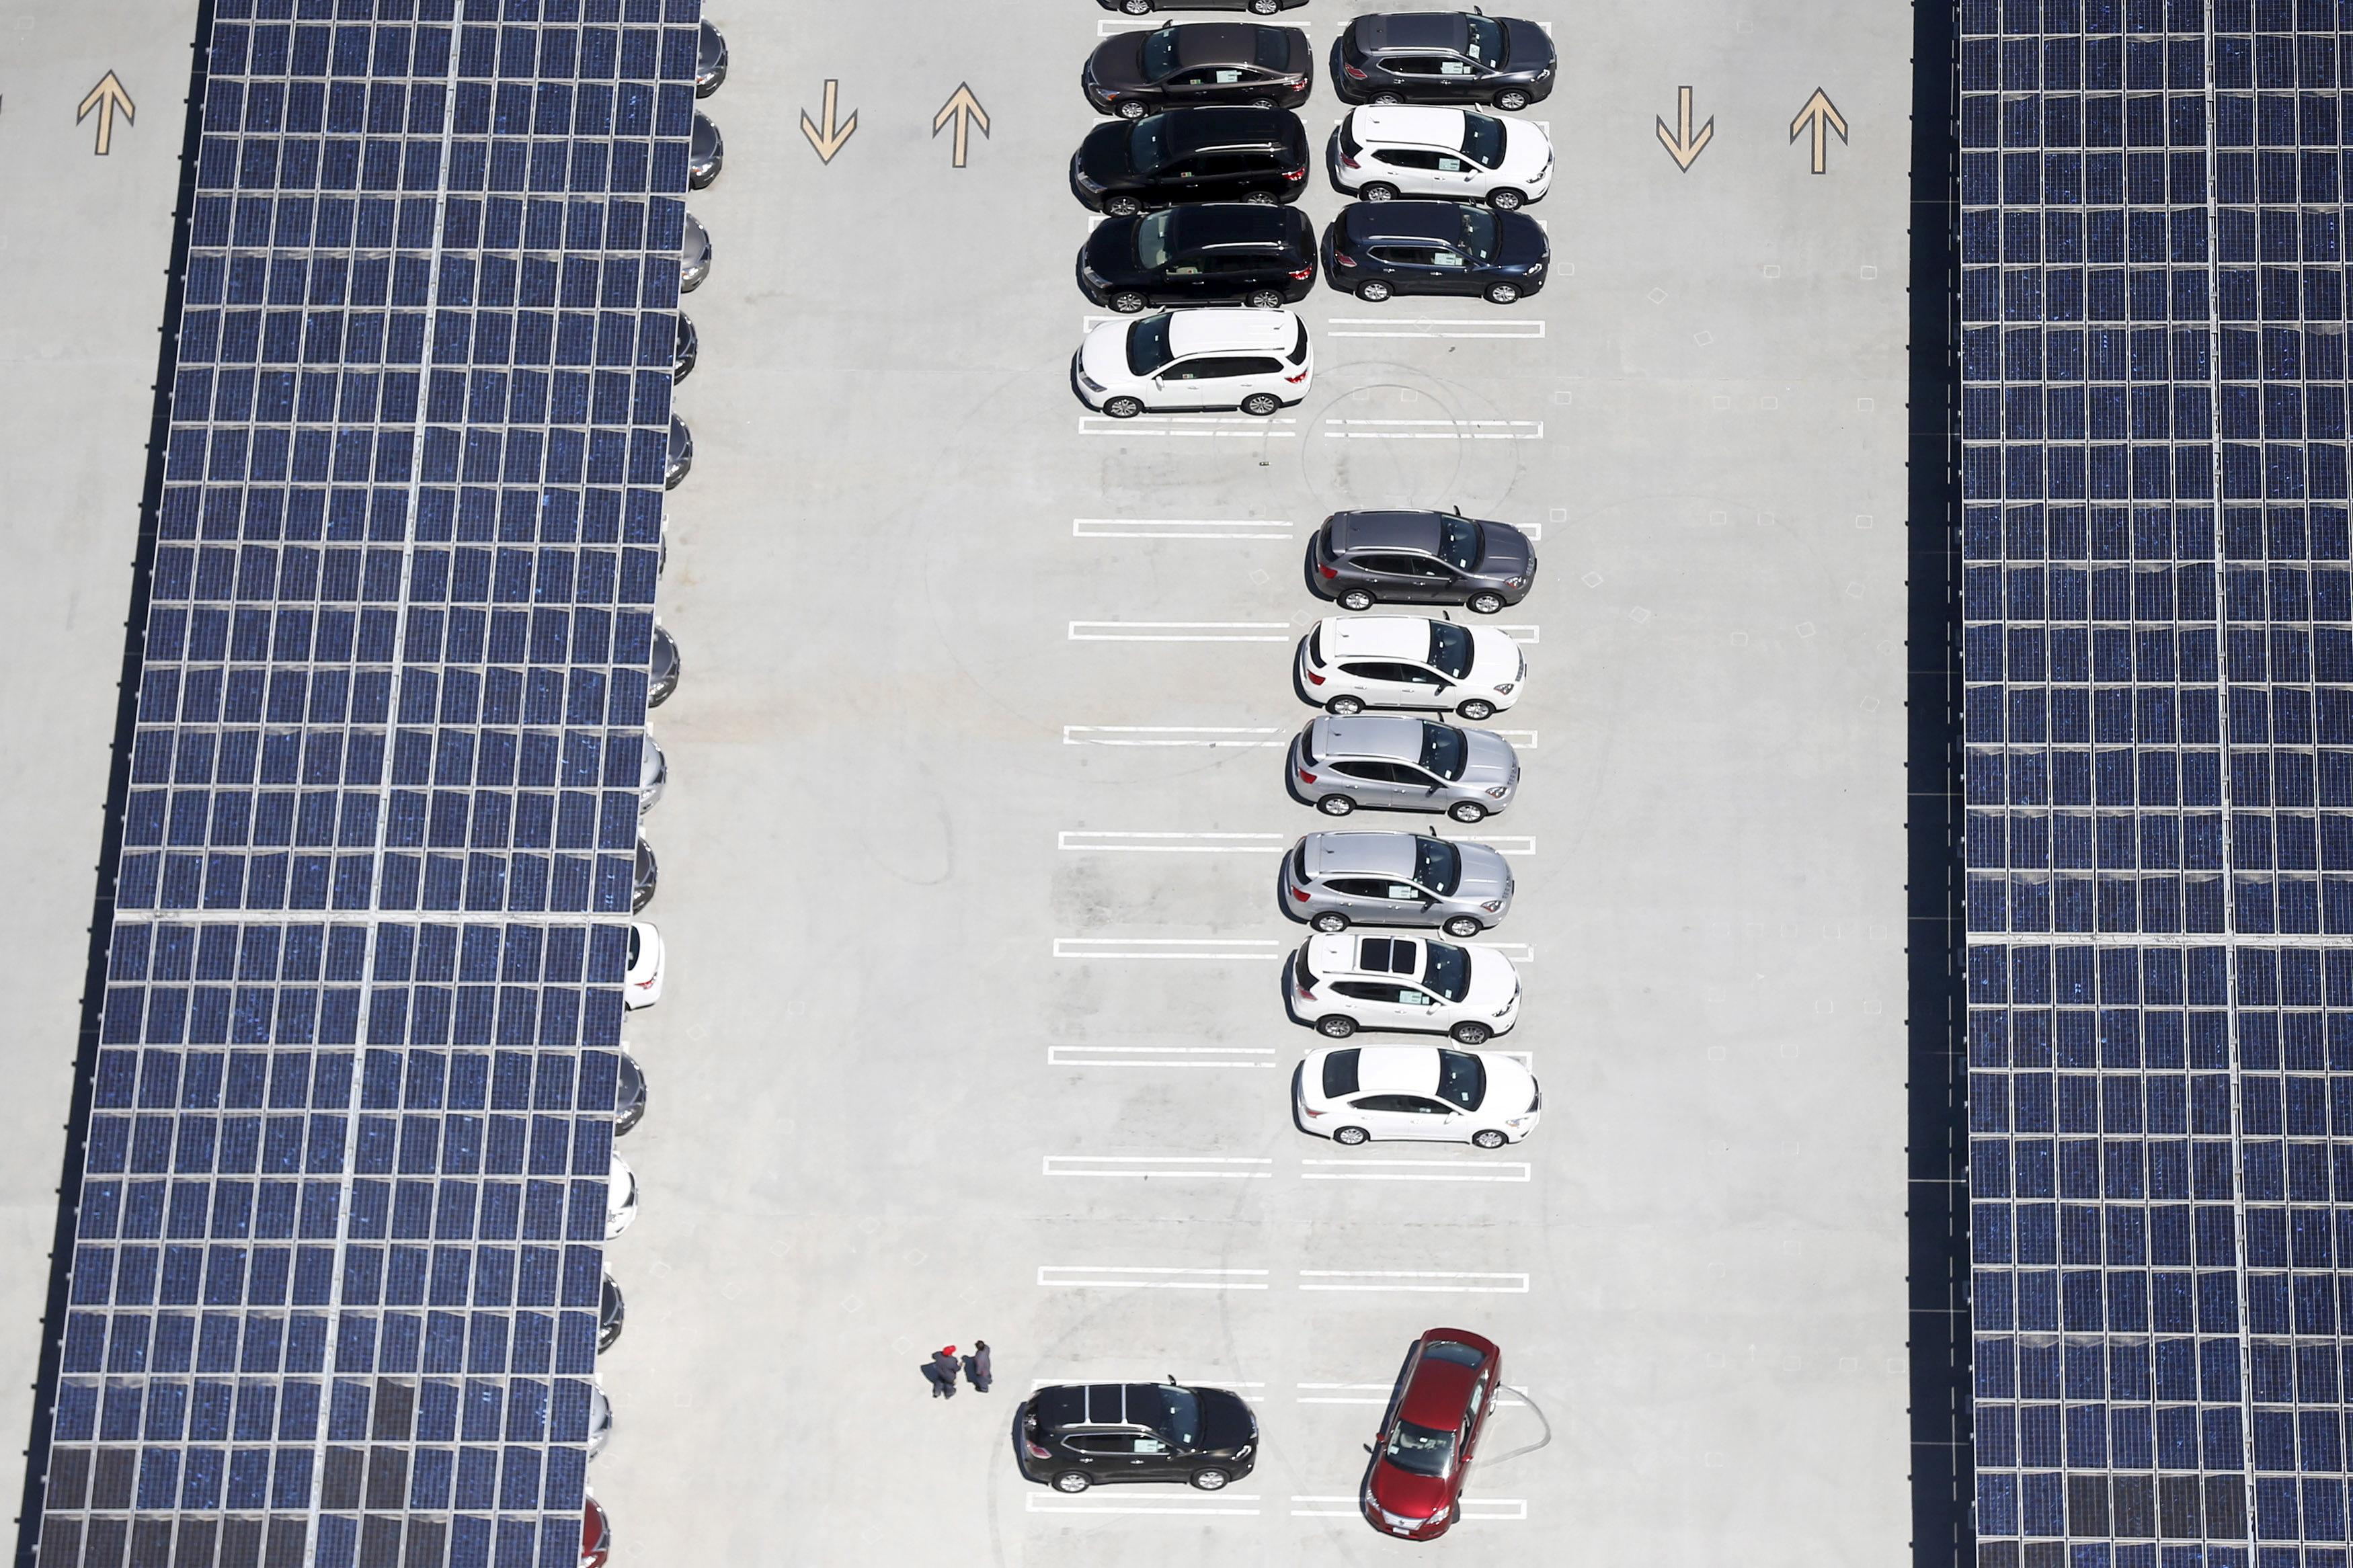 Expiring U S  solar subsidy spurs rush for panels - Reuters